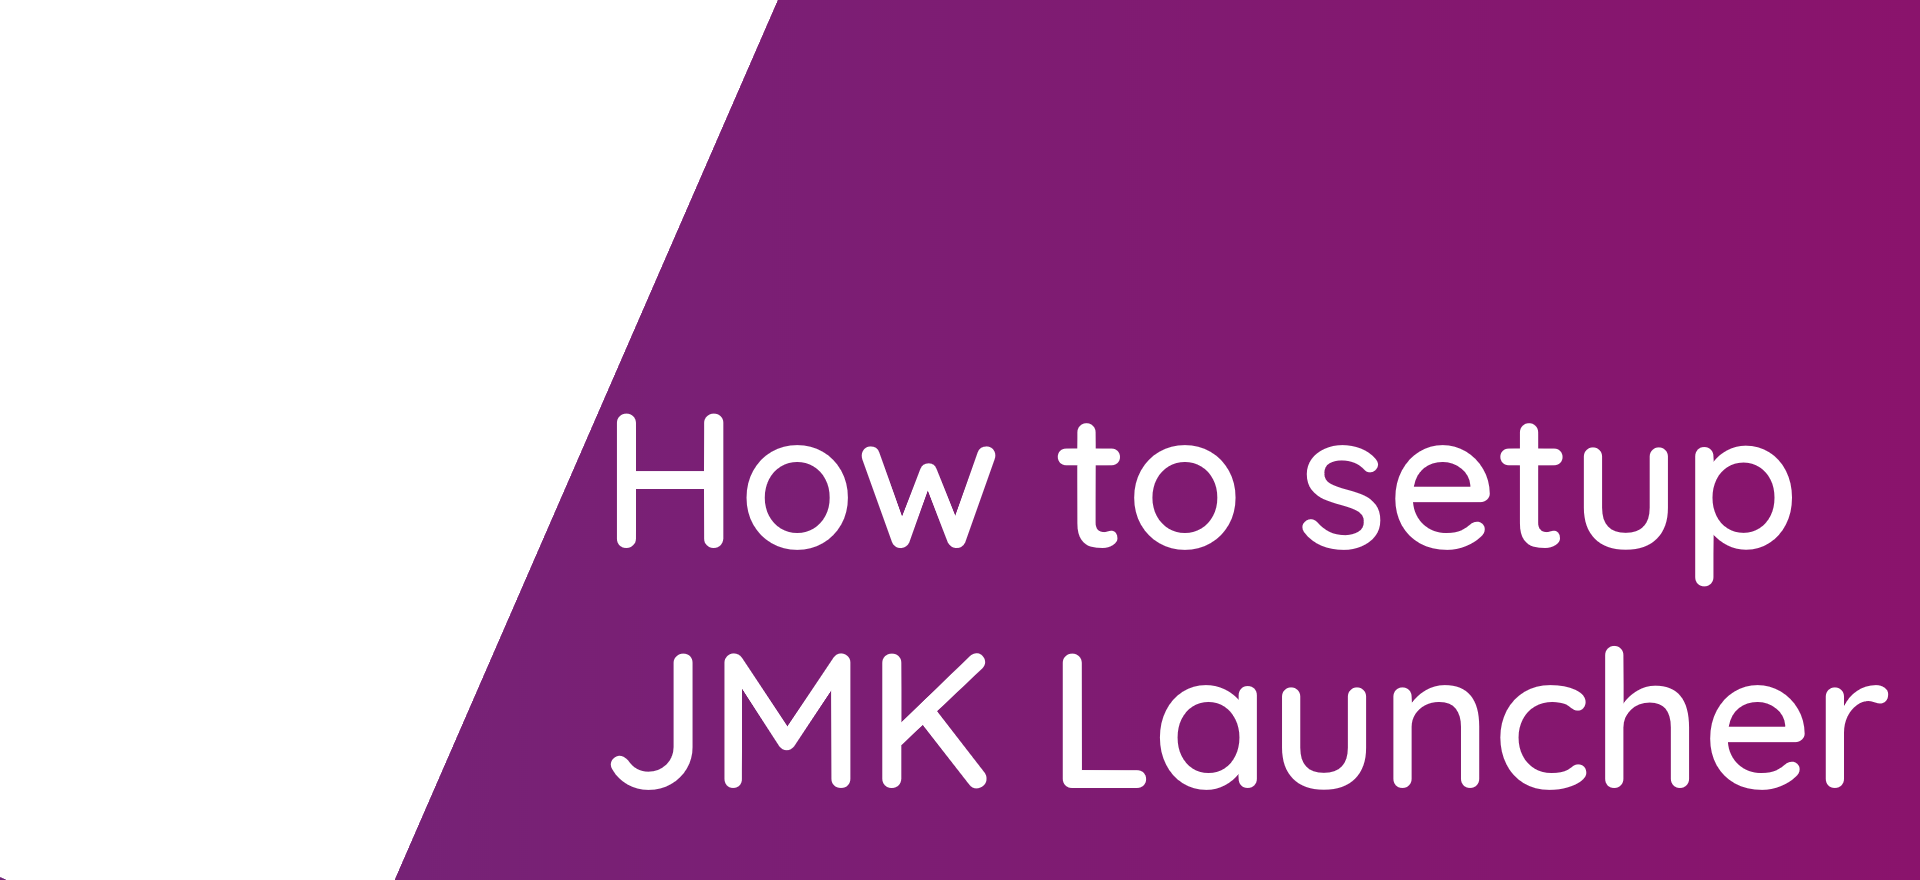 How to setup JMK Launcher